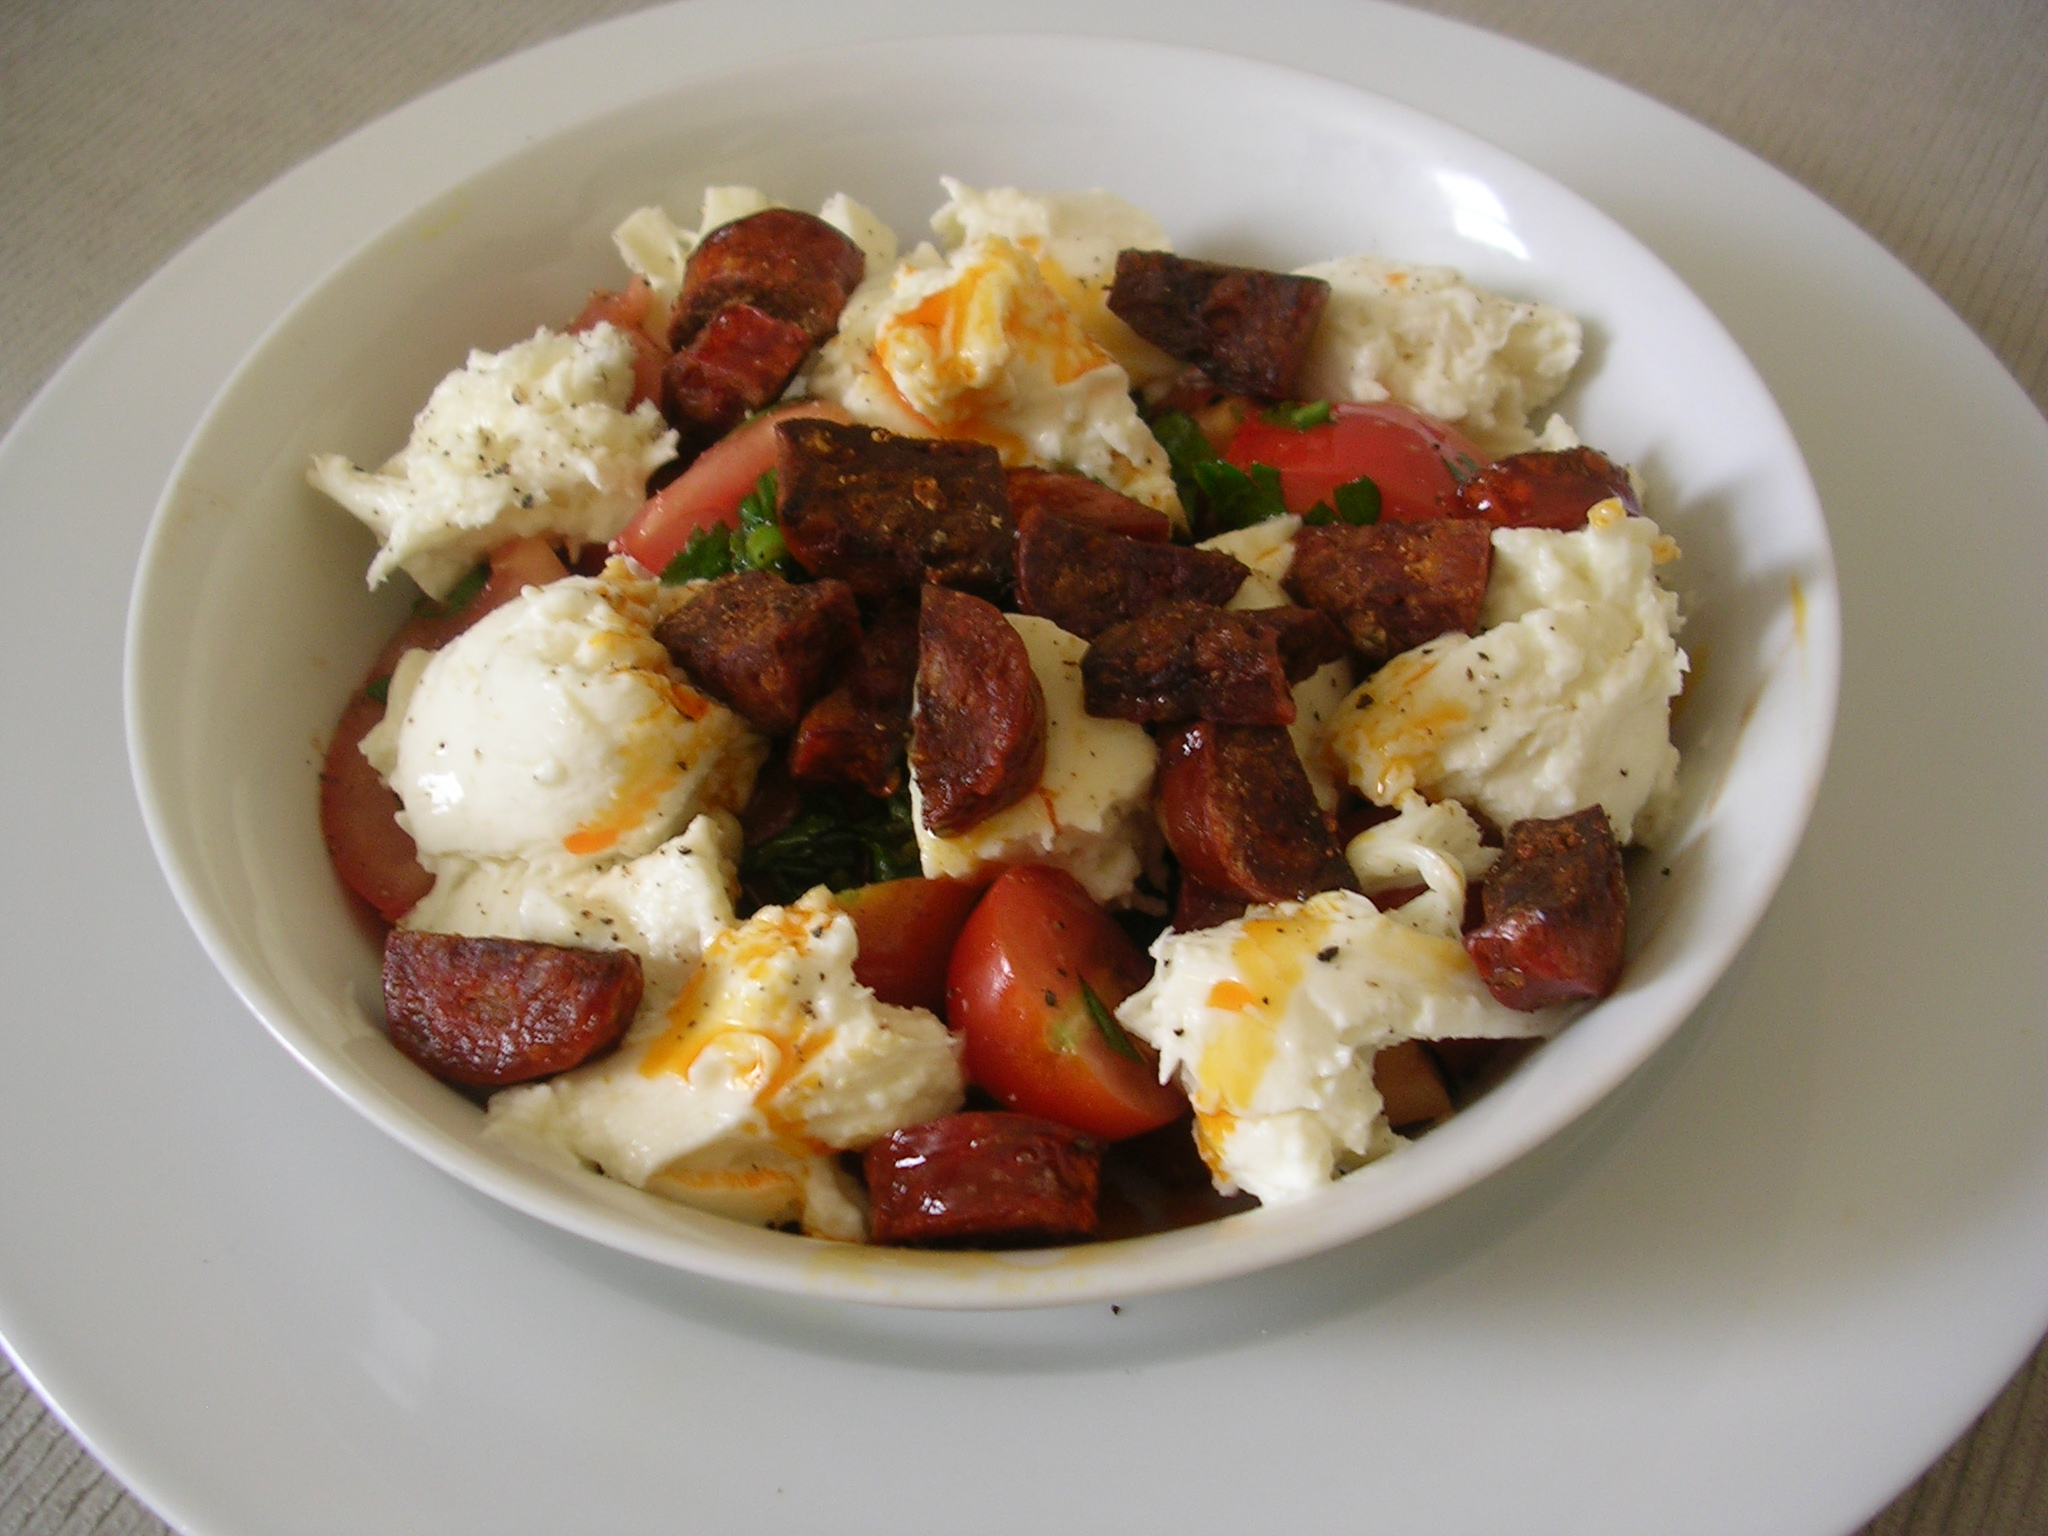 Tomato and Mozzarella Salad with Chorizo